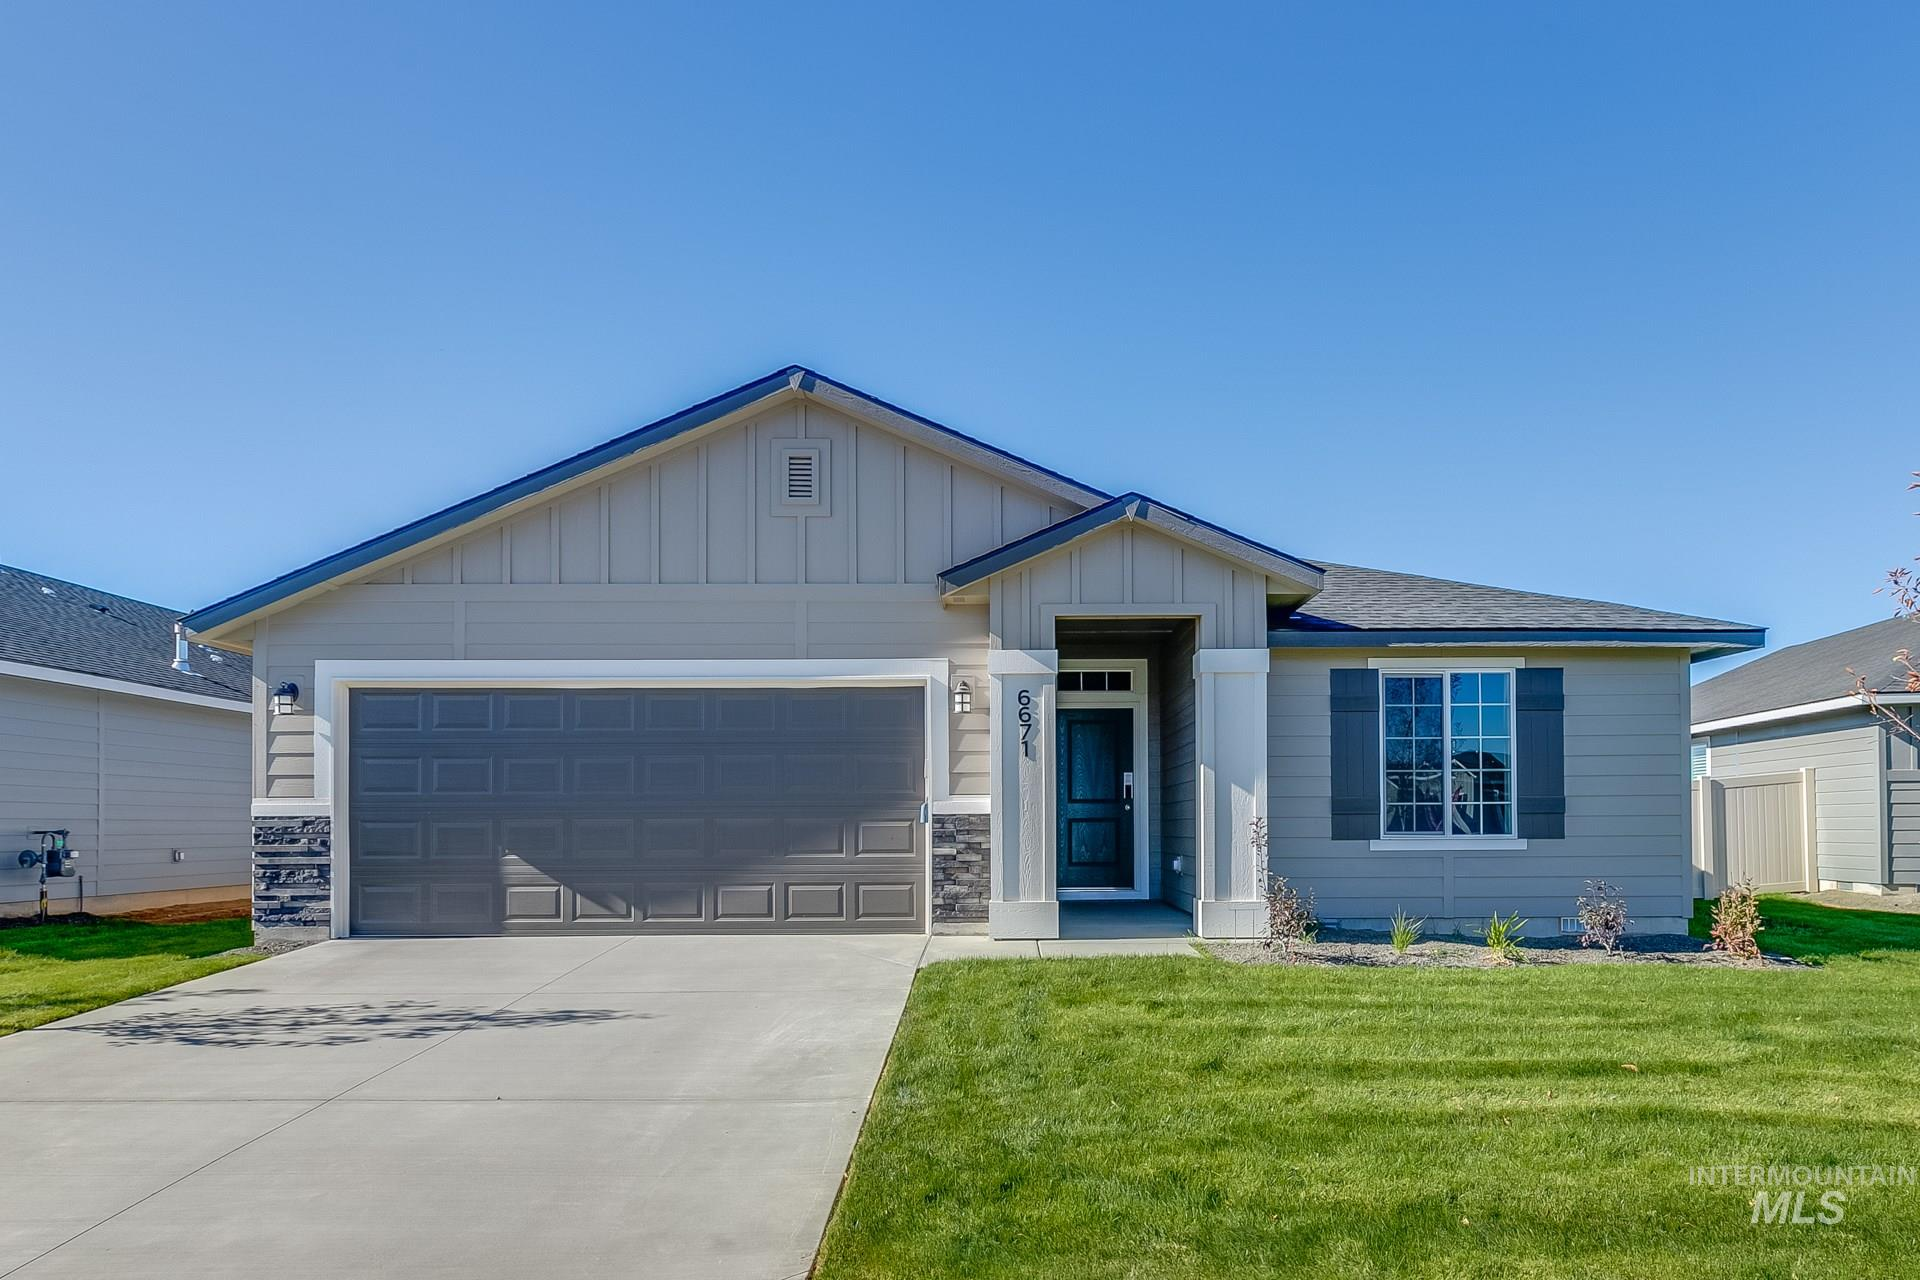 1569 N Thistle Dr Property Photo - Kuna, ID real estate listing